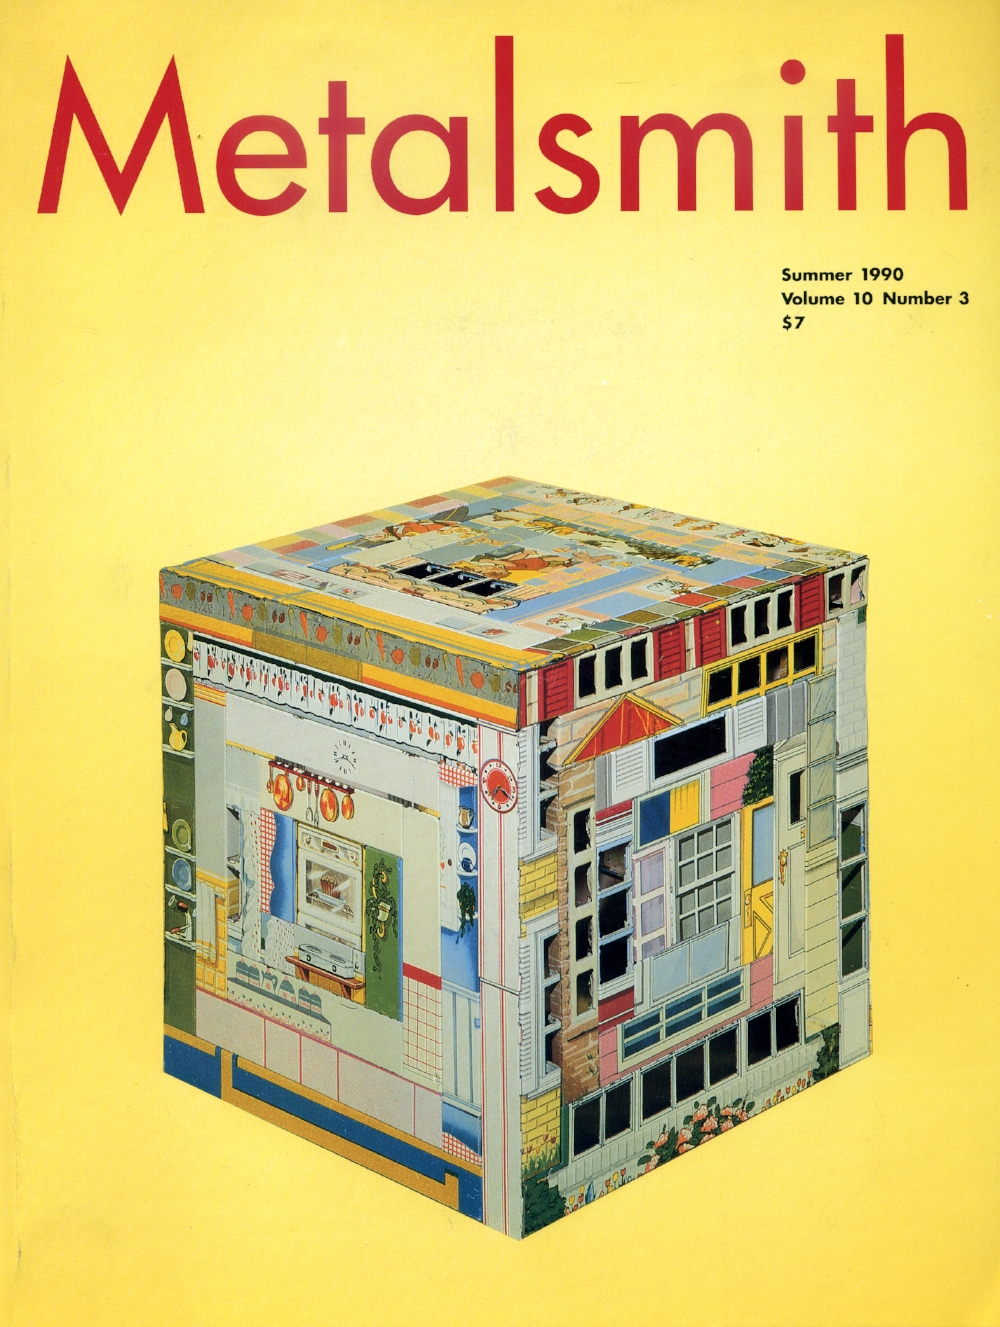 Metalsmith Magazine cover featuring  Patchwork Quilt, Small Pieces of Time.  This magazine issue featured  an article about the artwork by Harriete Estel Berman